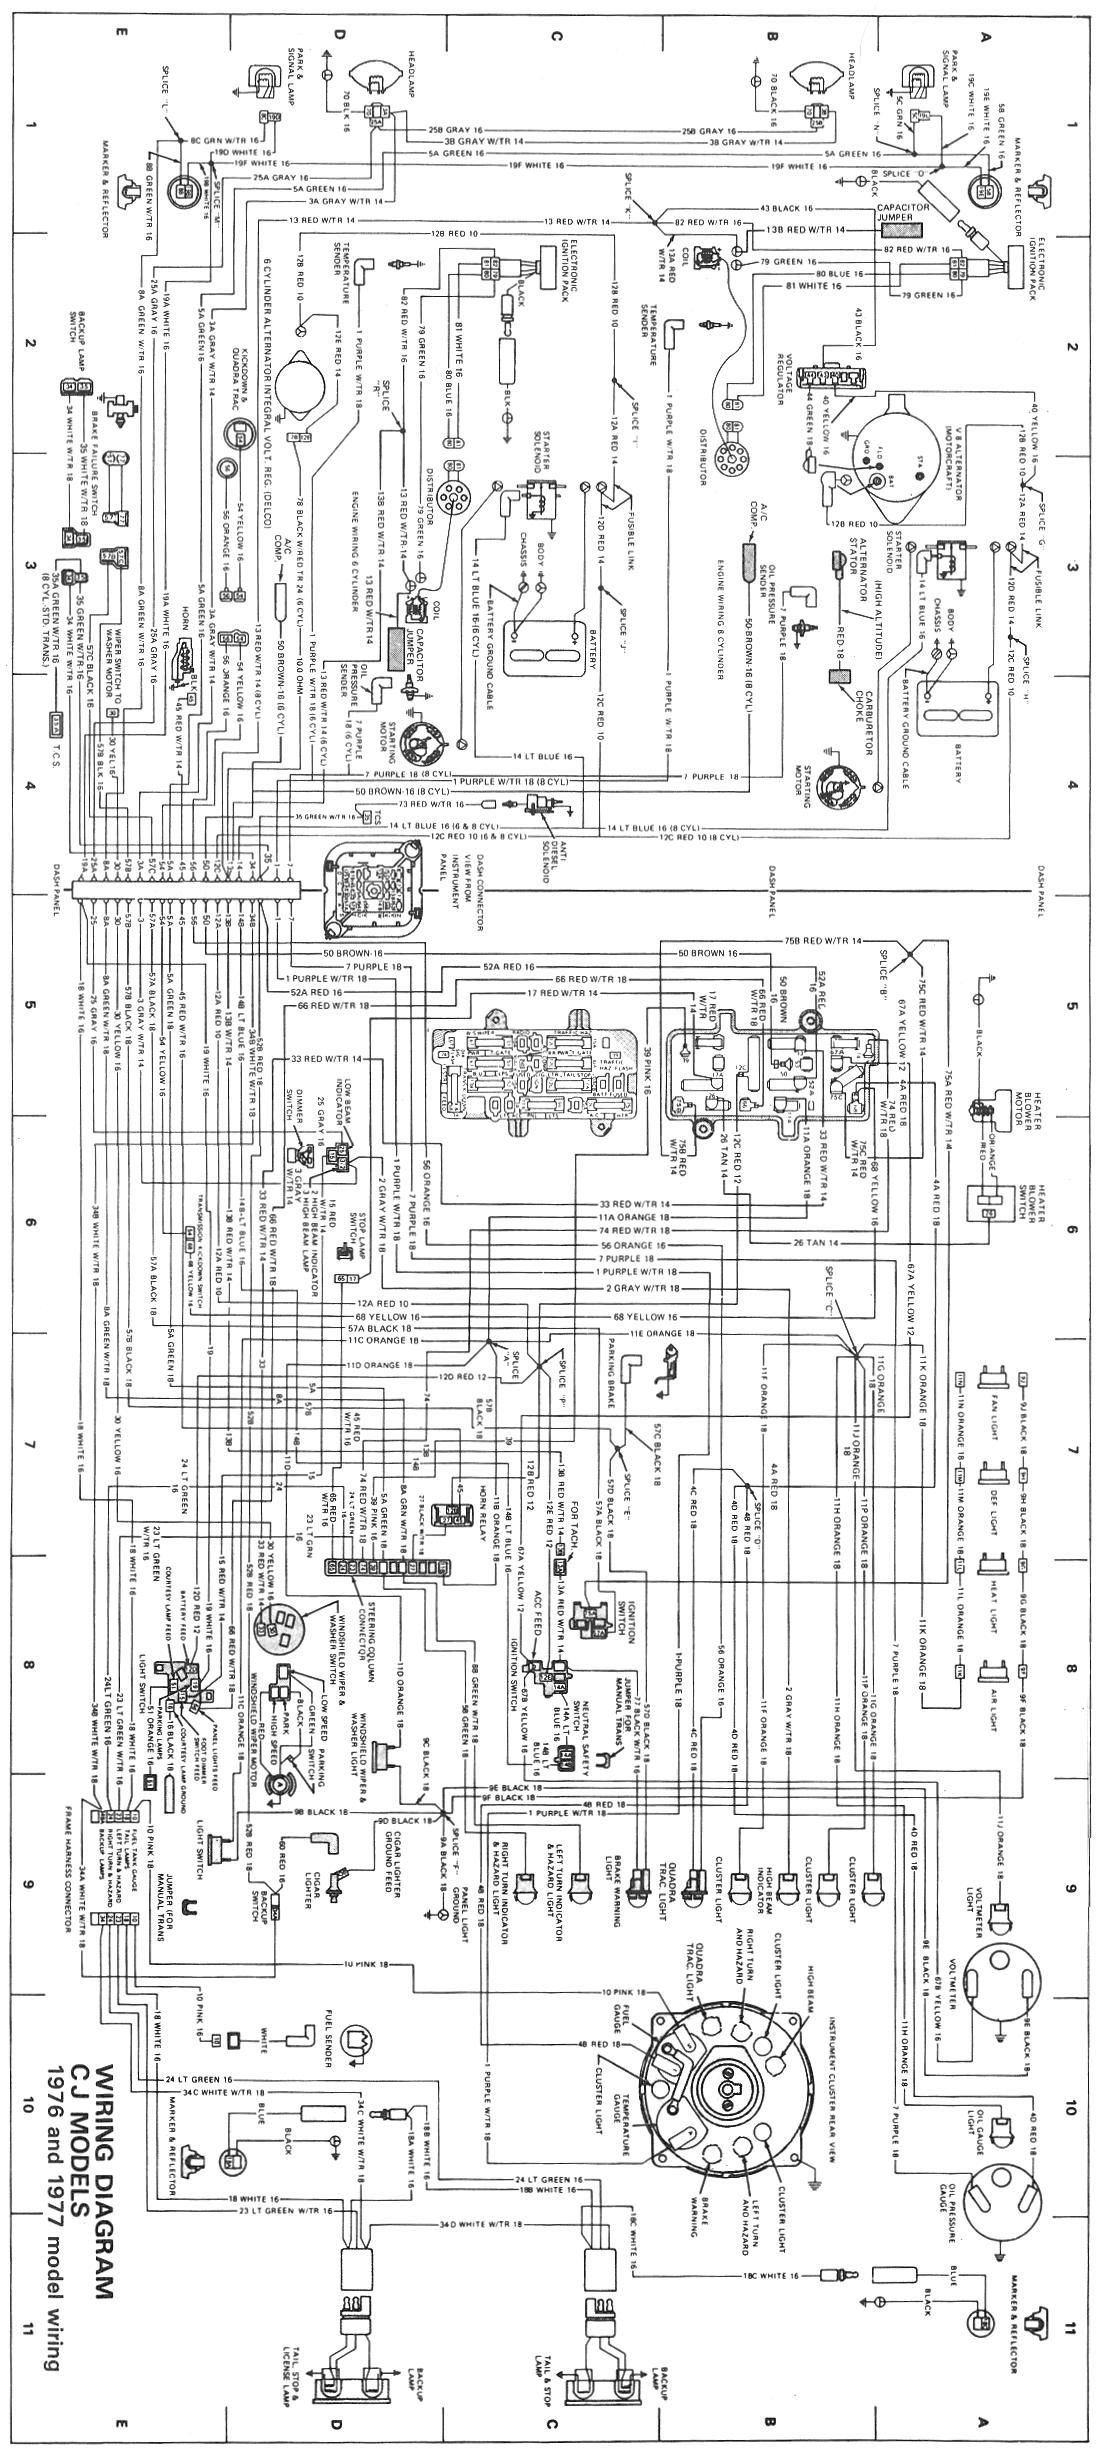 8d25ded6e3673519e155875e09844e5e cj wiring diagram 1976 1977 jpg 1,100�2,459 pixels 1976 jeep cj5 cjs wiring harness at pacquiaovsvargaslive.co